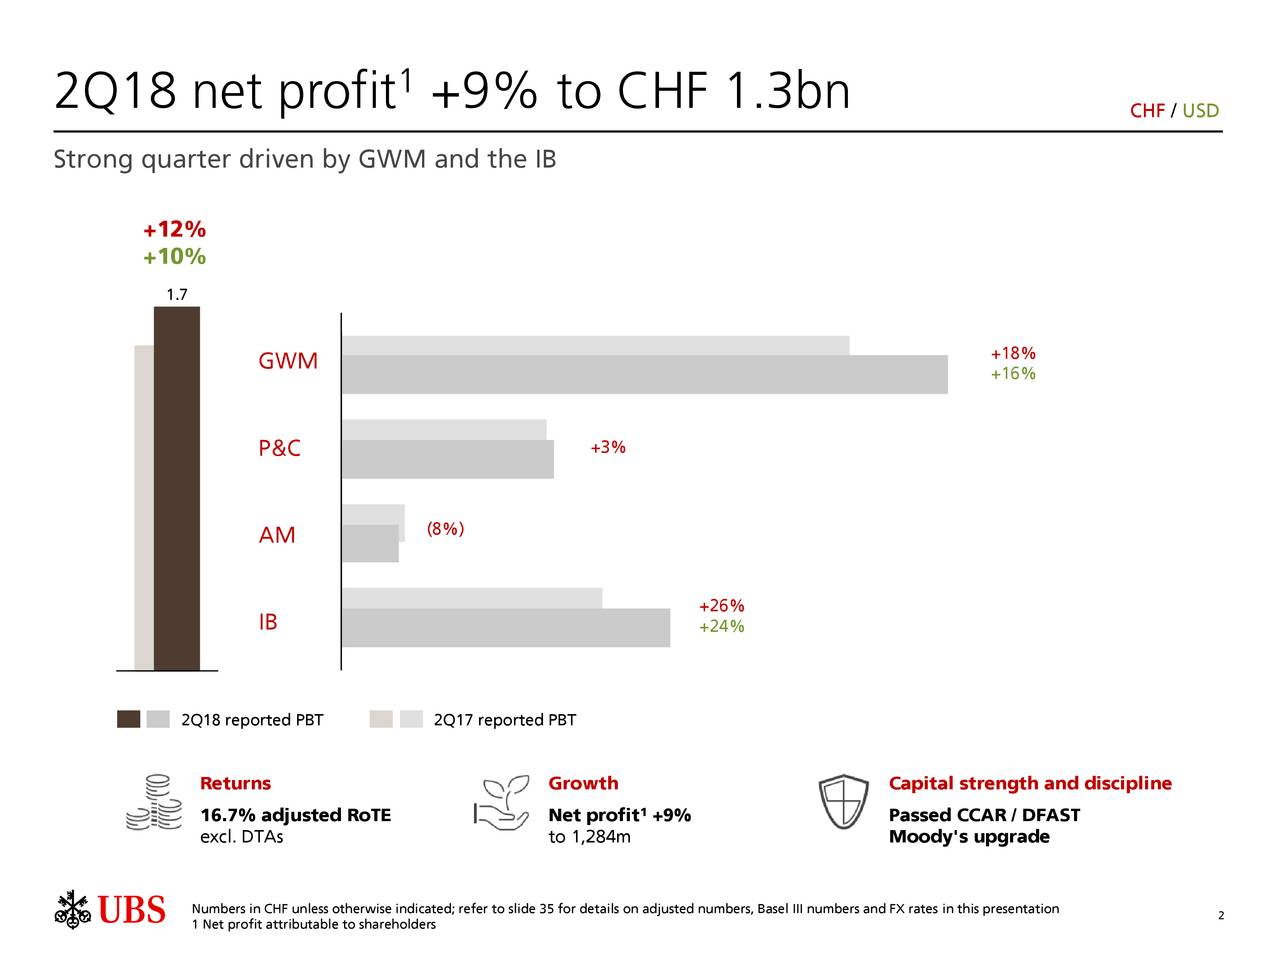 2Q18 net profit +9% to CHF 1.3bn CHF / USD Strong quarter driven by GWM and the IB +12% +10% .7 GWM +18% +16% P&C +3% AM (8%) +26% IB +24% 2Q18 reported PBT 2Q17 reported PBT Returns Growth Capital strength and discipline 6.7% adjusted RoTE Net profit +9% Passed CCAR / DFAST excl. DTAs to 1,284m Moody's upgrade Net profit attributable to shareholders; refer to slide 35 for details on adjusted numbers,2Basel III numbers and FX rates in this presentation